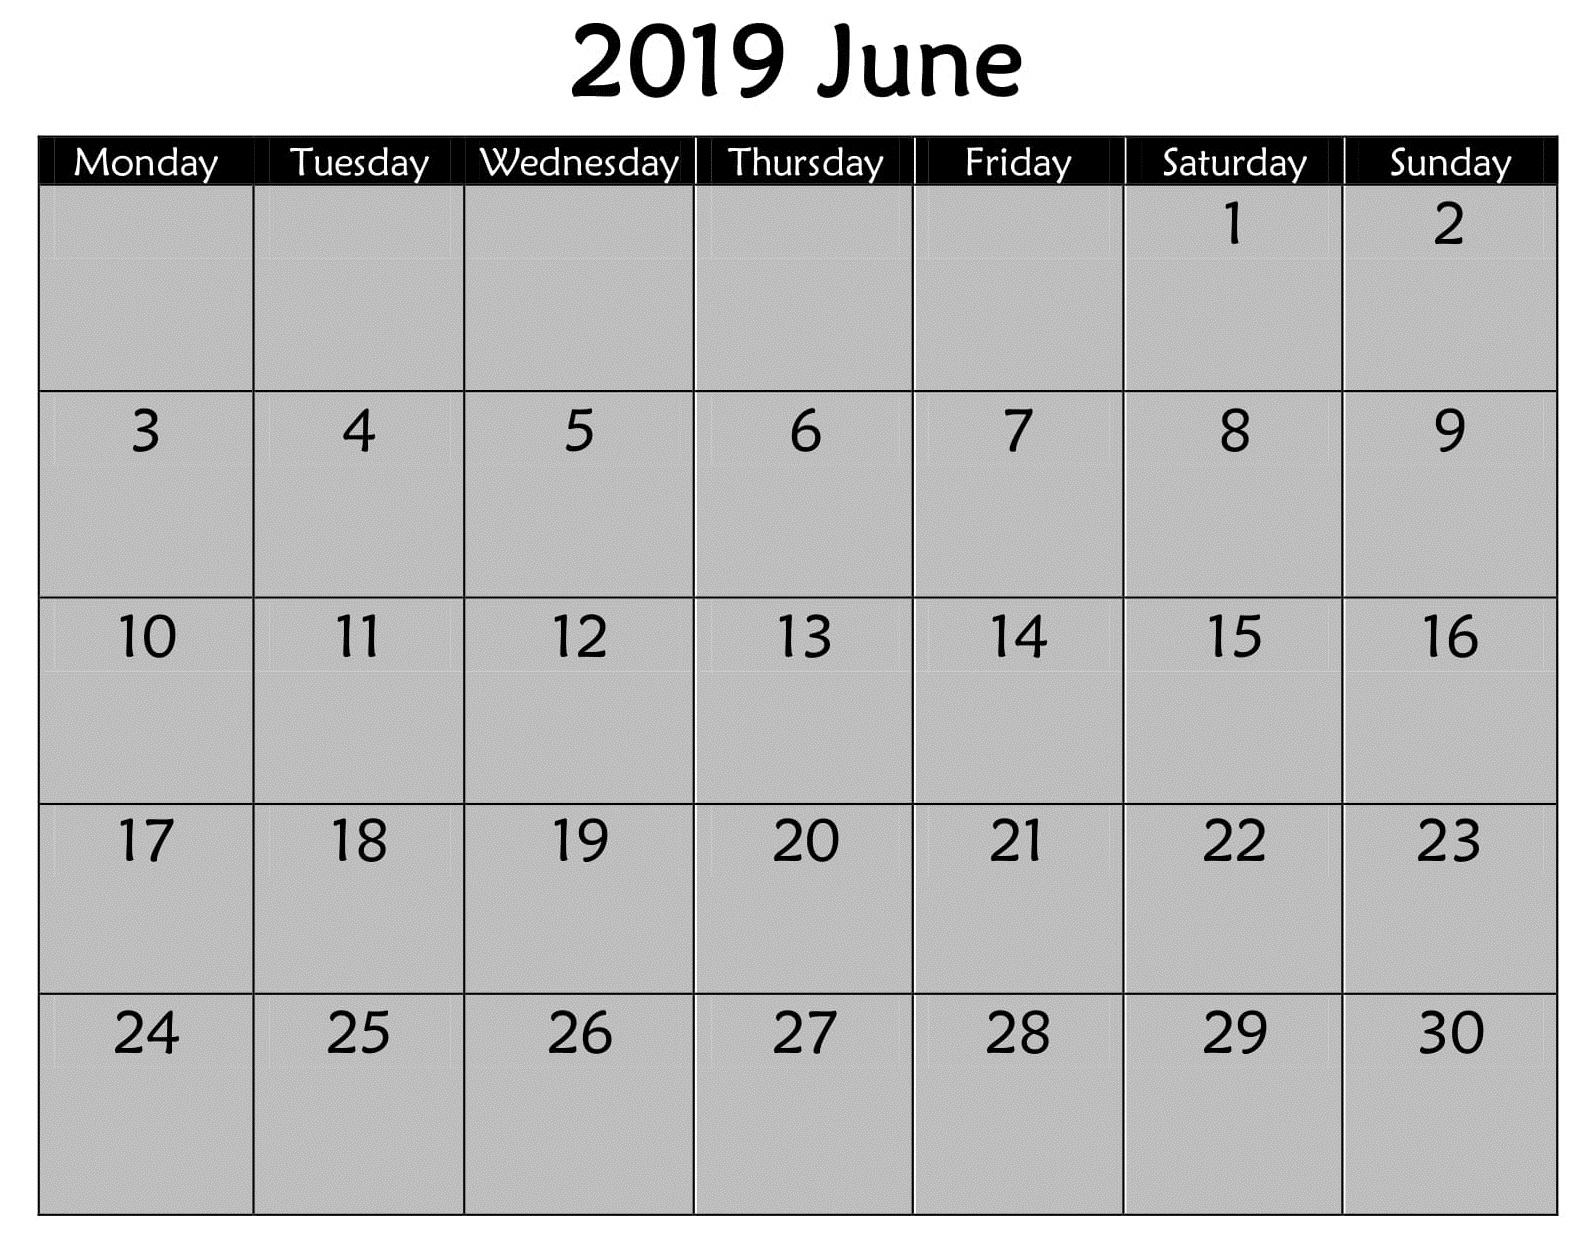 June 2019 Editable Calendar Template